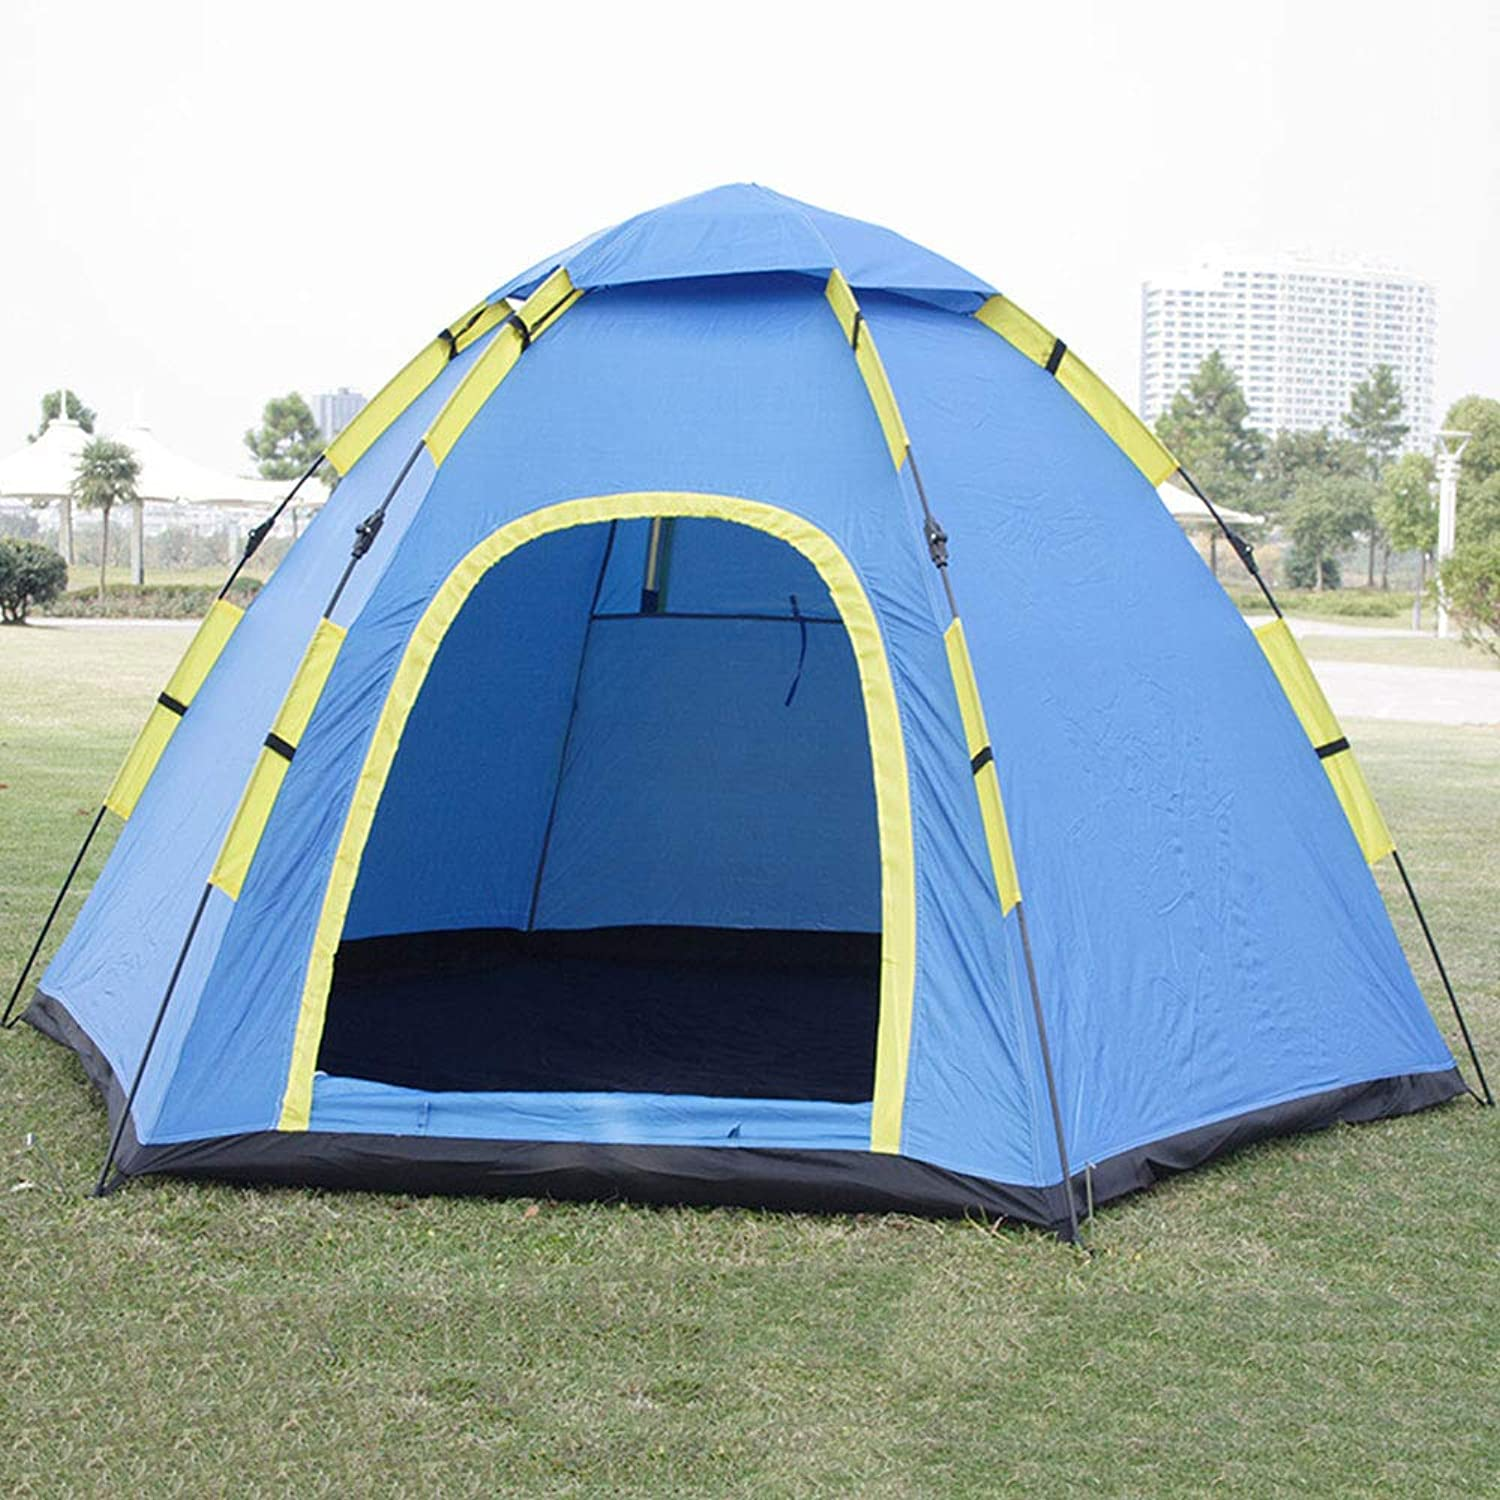 5aa8f8b5ce3c Camping Tent 3-4 People People People [ Ready to use Tent ...